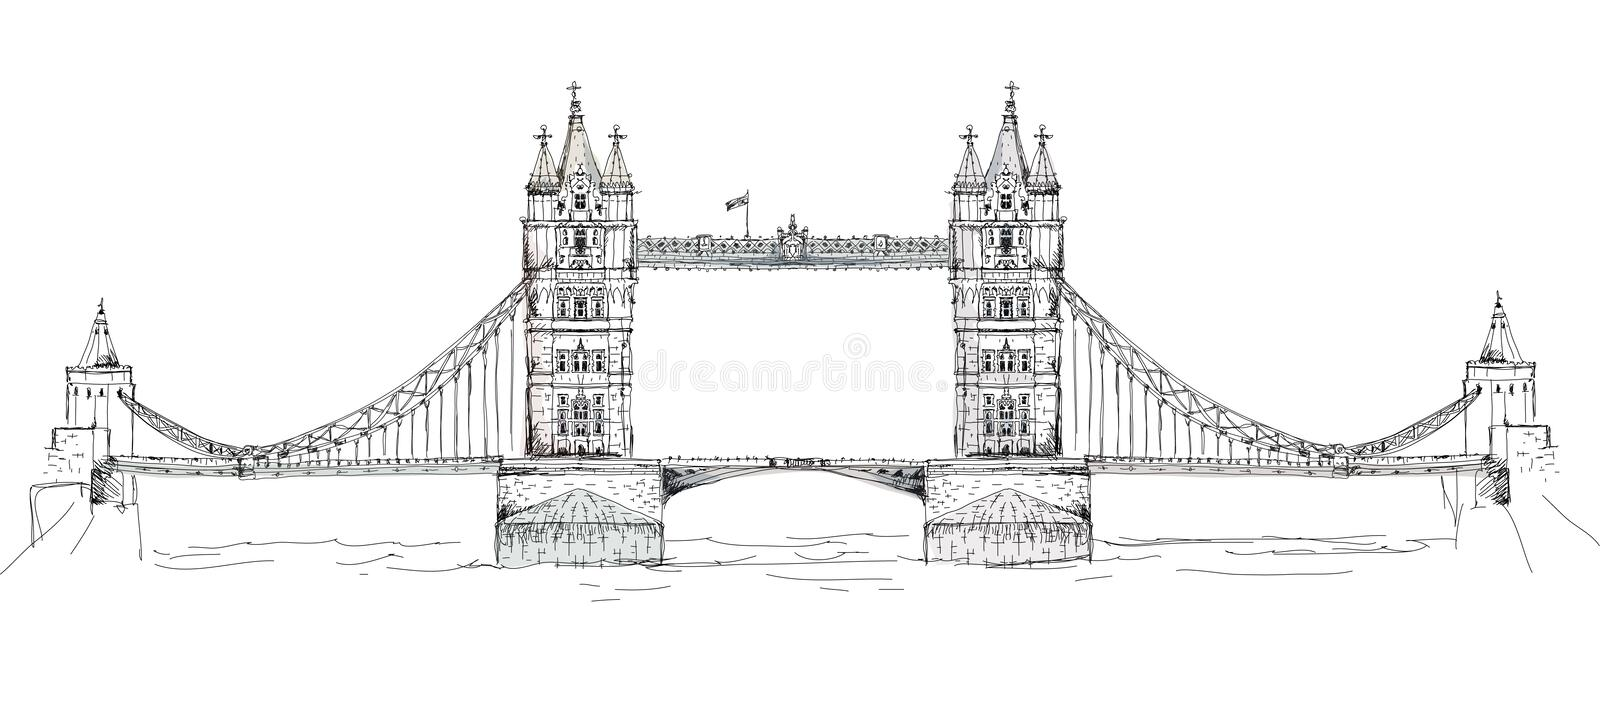 Stå högt bron i London, skissa samlingen, den Buckingham Palace porten vektor illustrationer